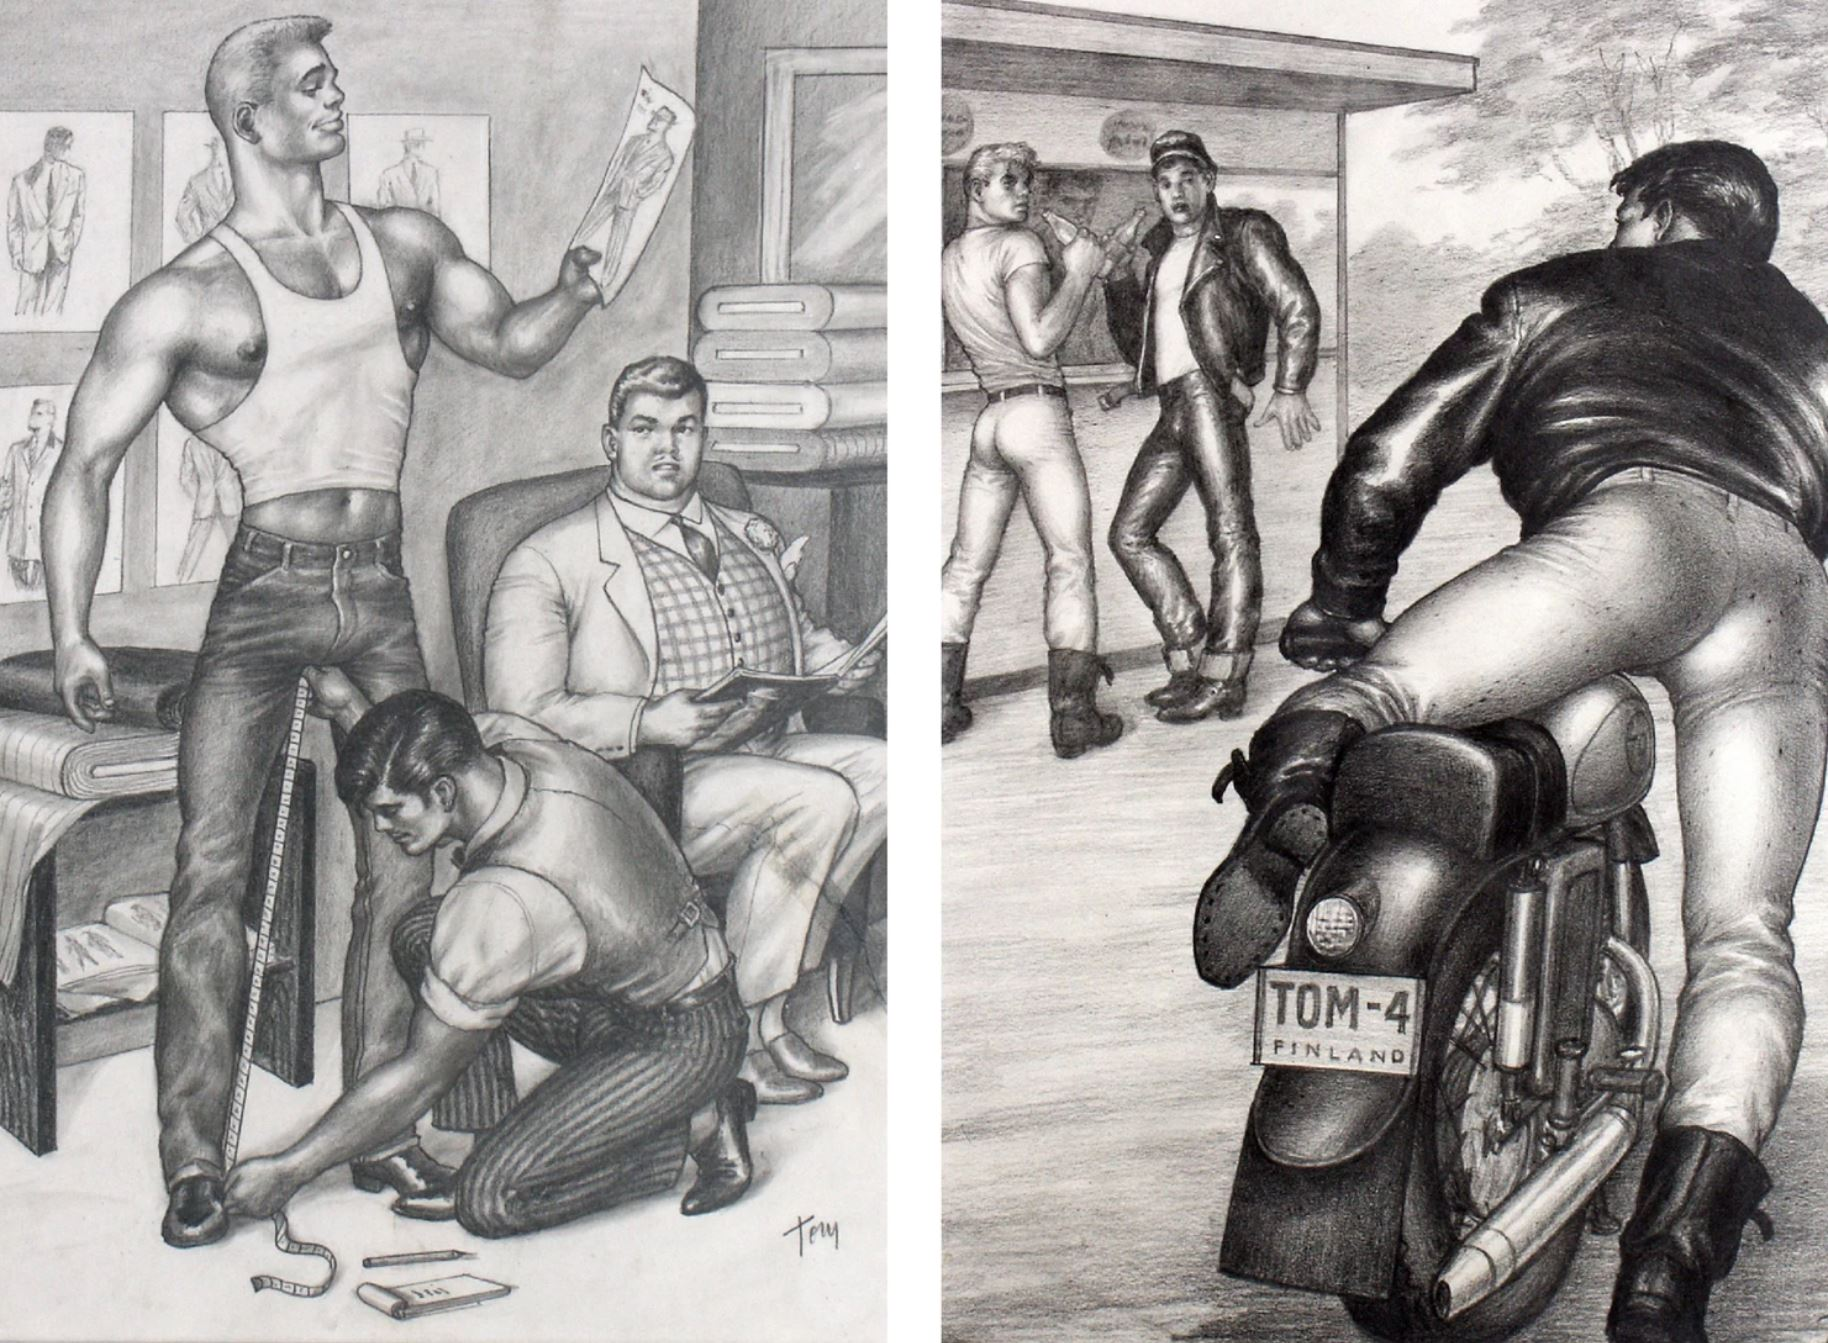 """Left: Tom Of Finland, Untitled , 1959. Right: Tom of Finland, Untitled (from """"Motorcycle Thief"""" series), 1964. Courtesy of Tom of Finland Foundation and David Kordansky Gallery, Los Angeles, California."""